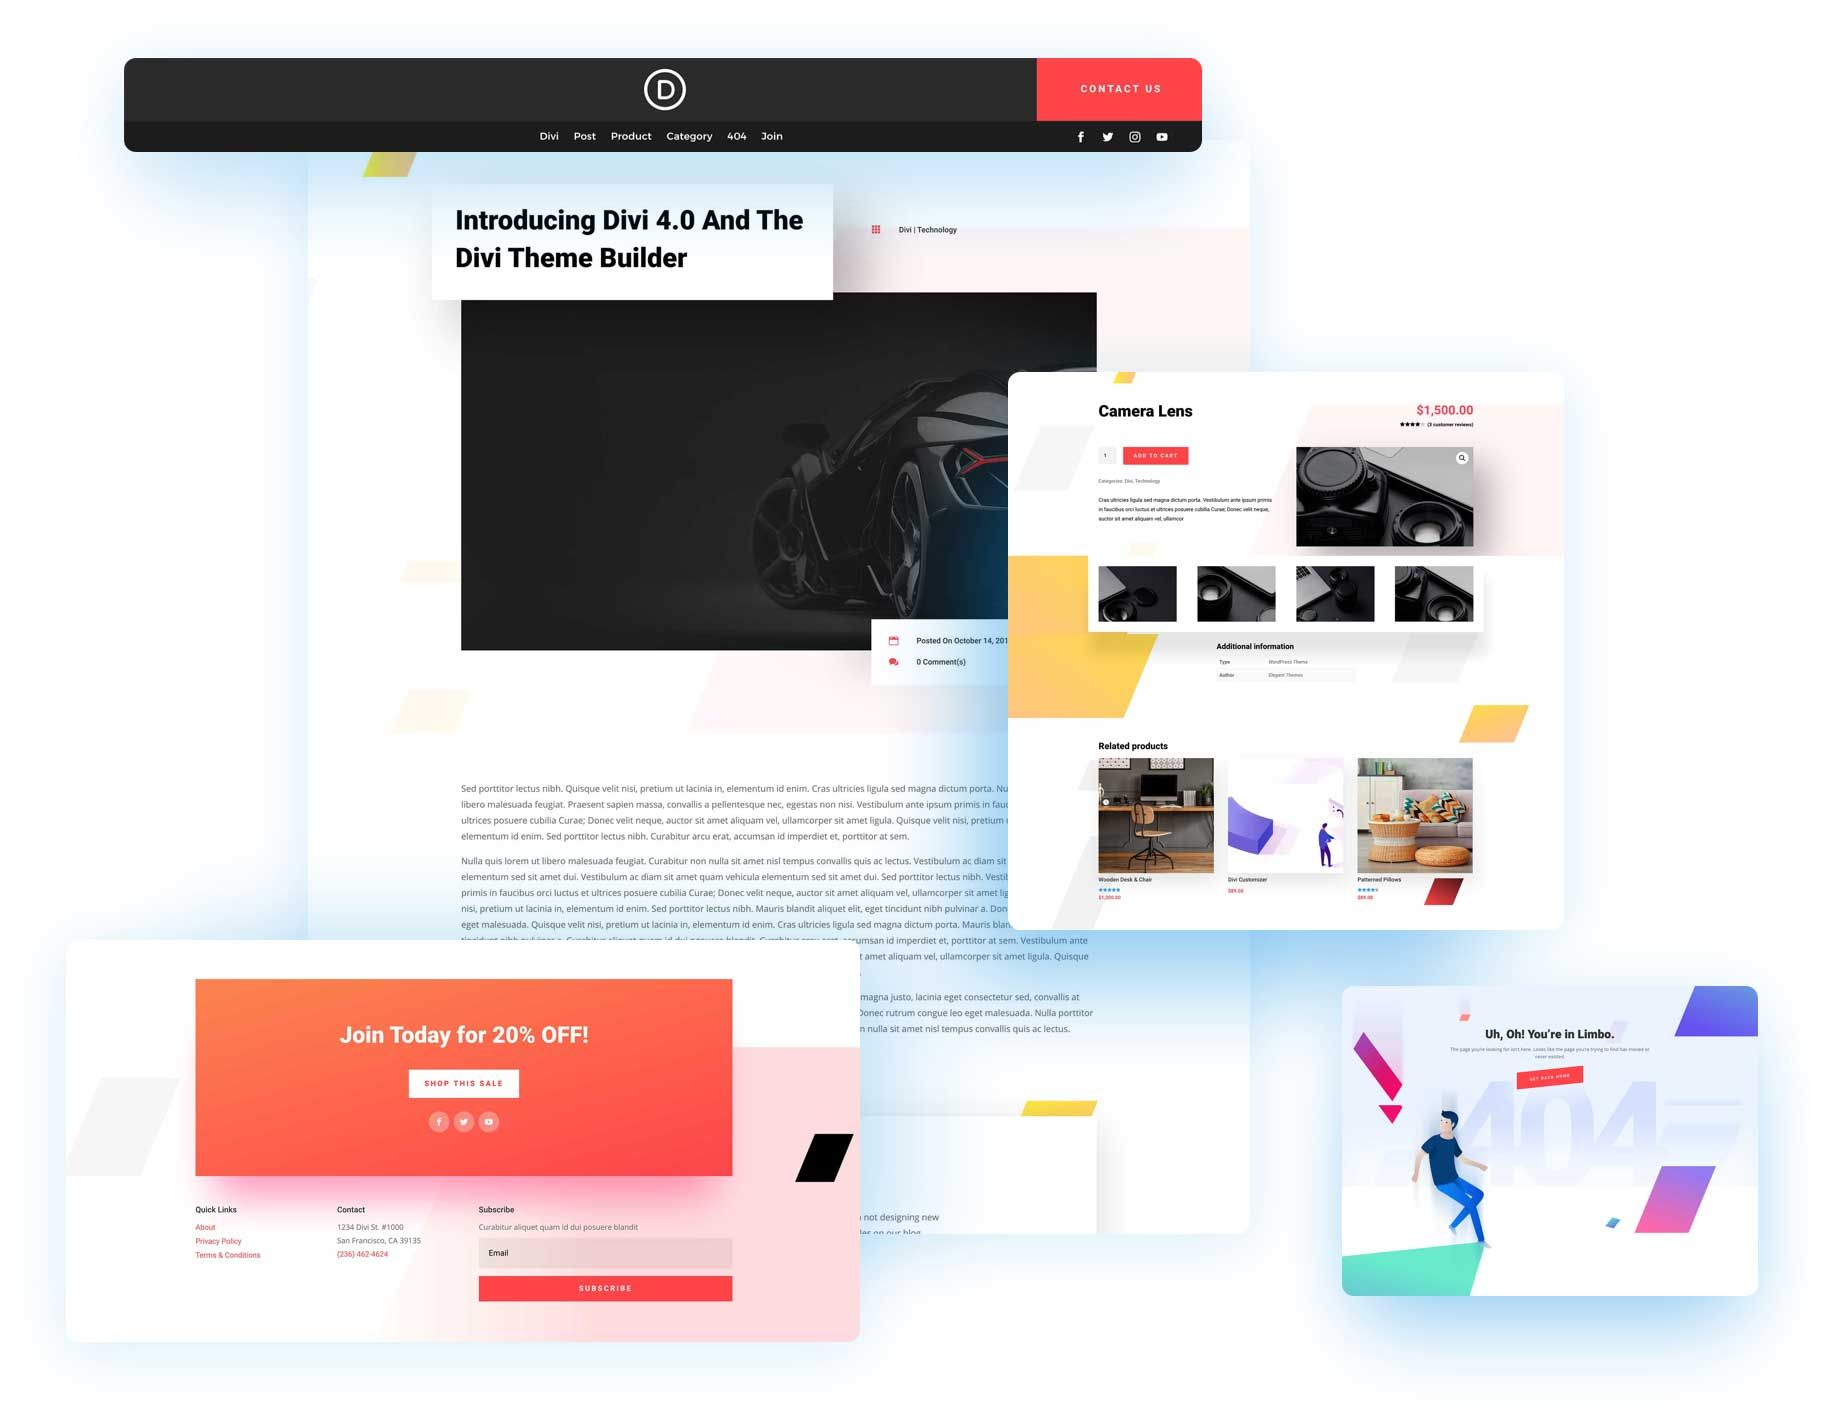 Download The Fourth Free Theme Builder Pack For Divi In 2020 Blog Themes Theme Divi Theme